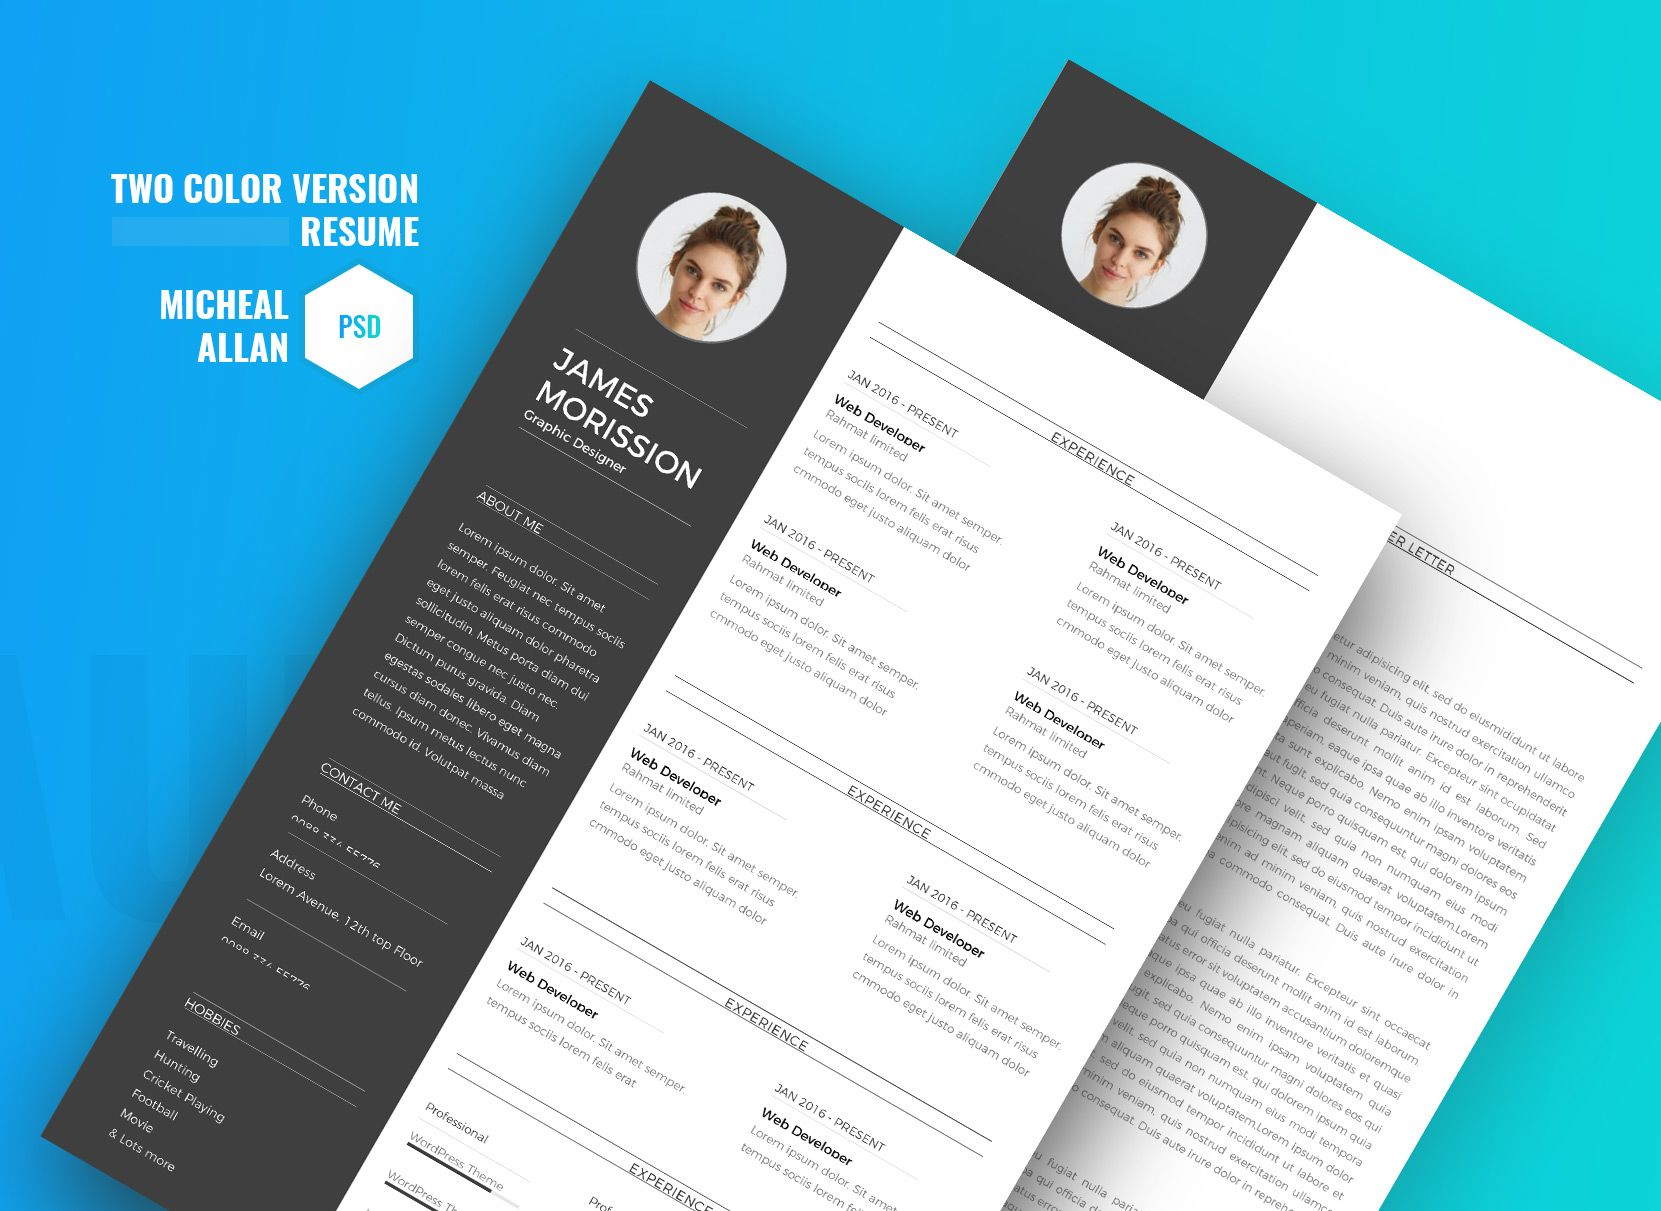 Our resume templates are tailored to fit the position you